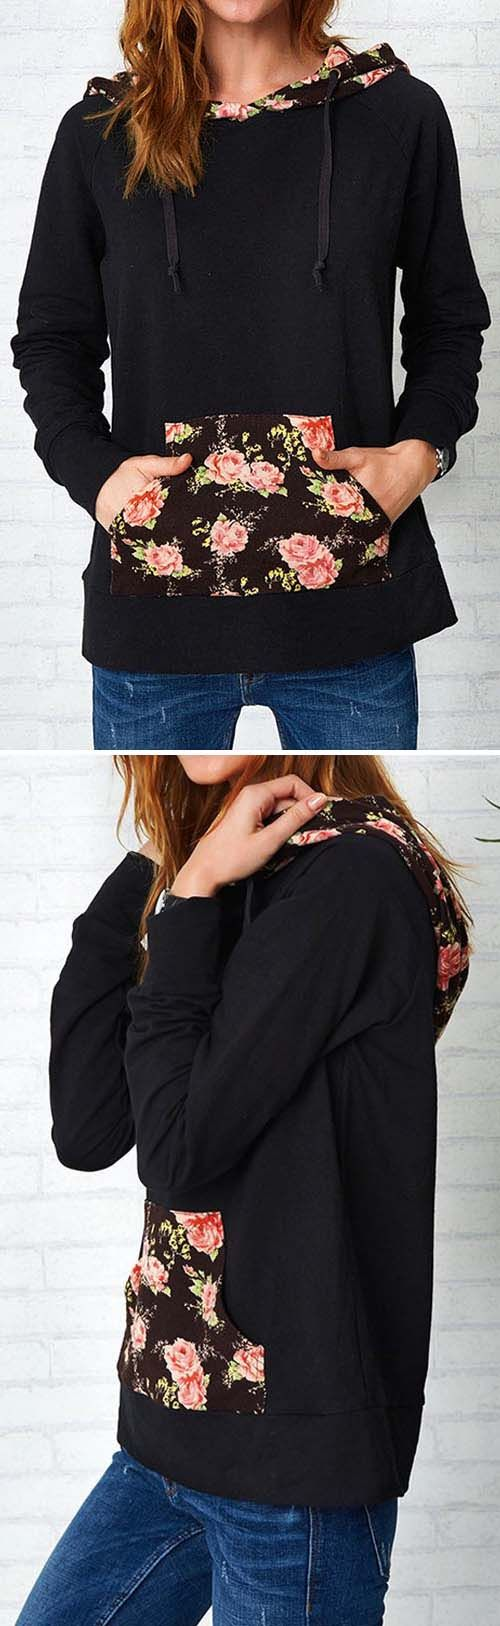 Only $25.99&free shipping! We love the romantic feel of this sweatshirt! High-quality with absolutely cozy feel! Get some flowers now. For more stylish items at Cupshe.com !